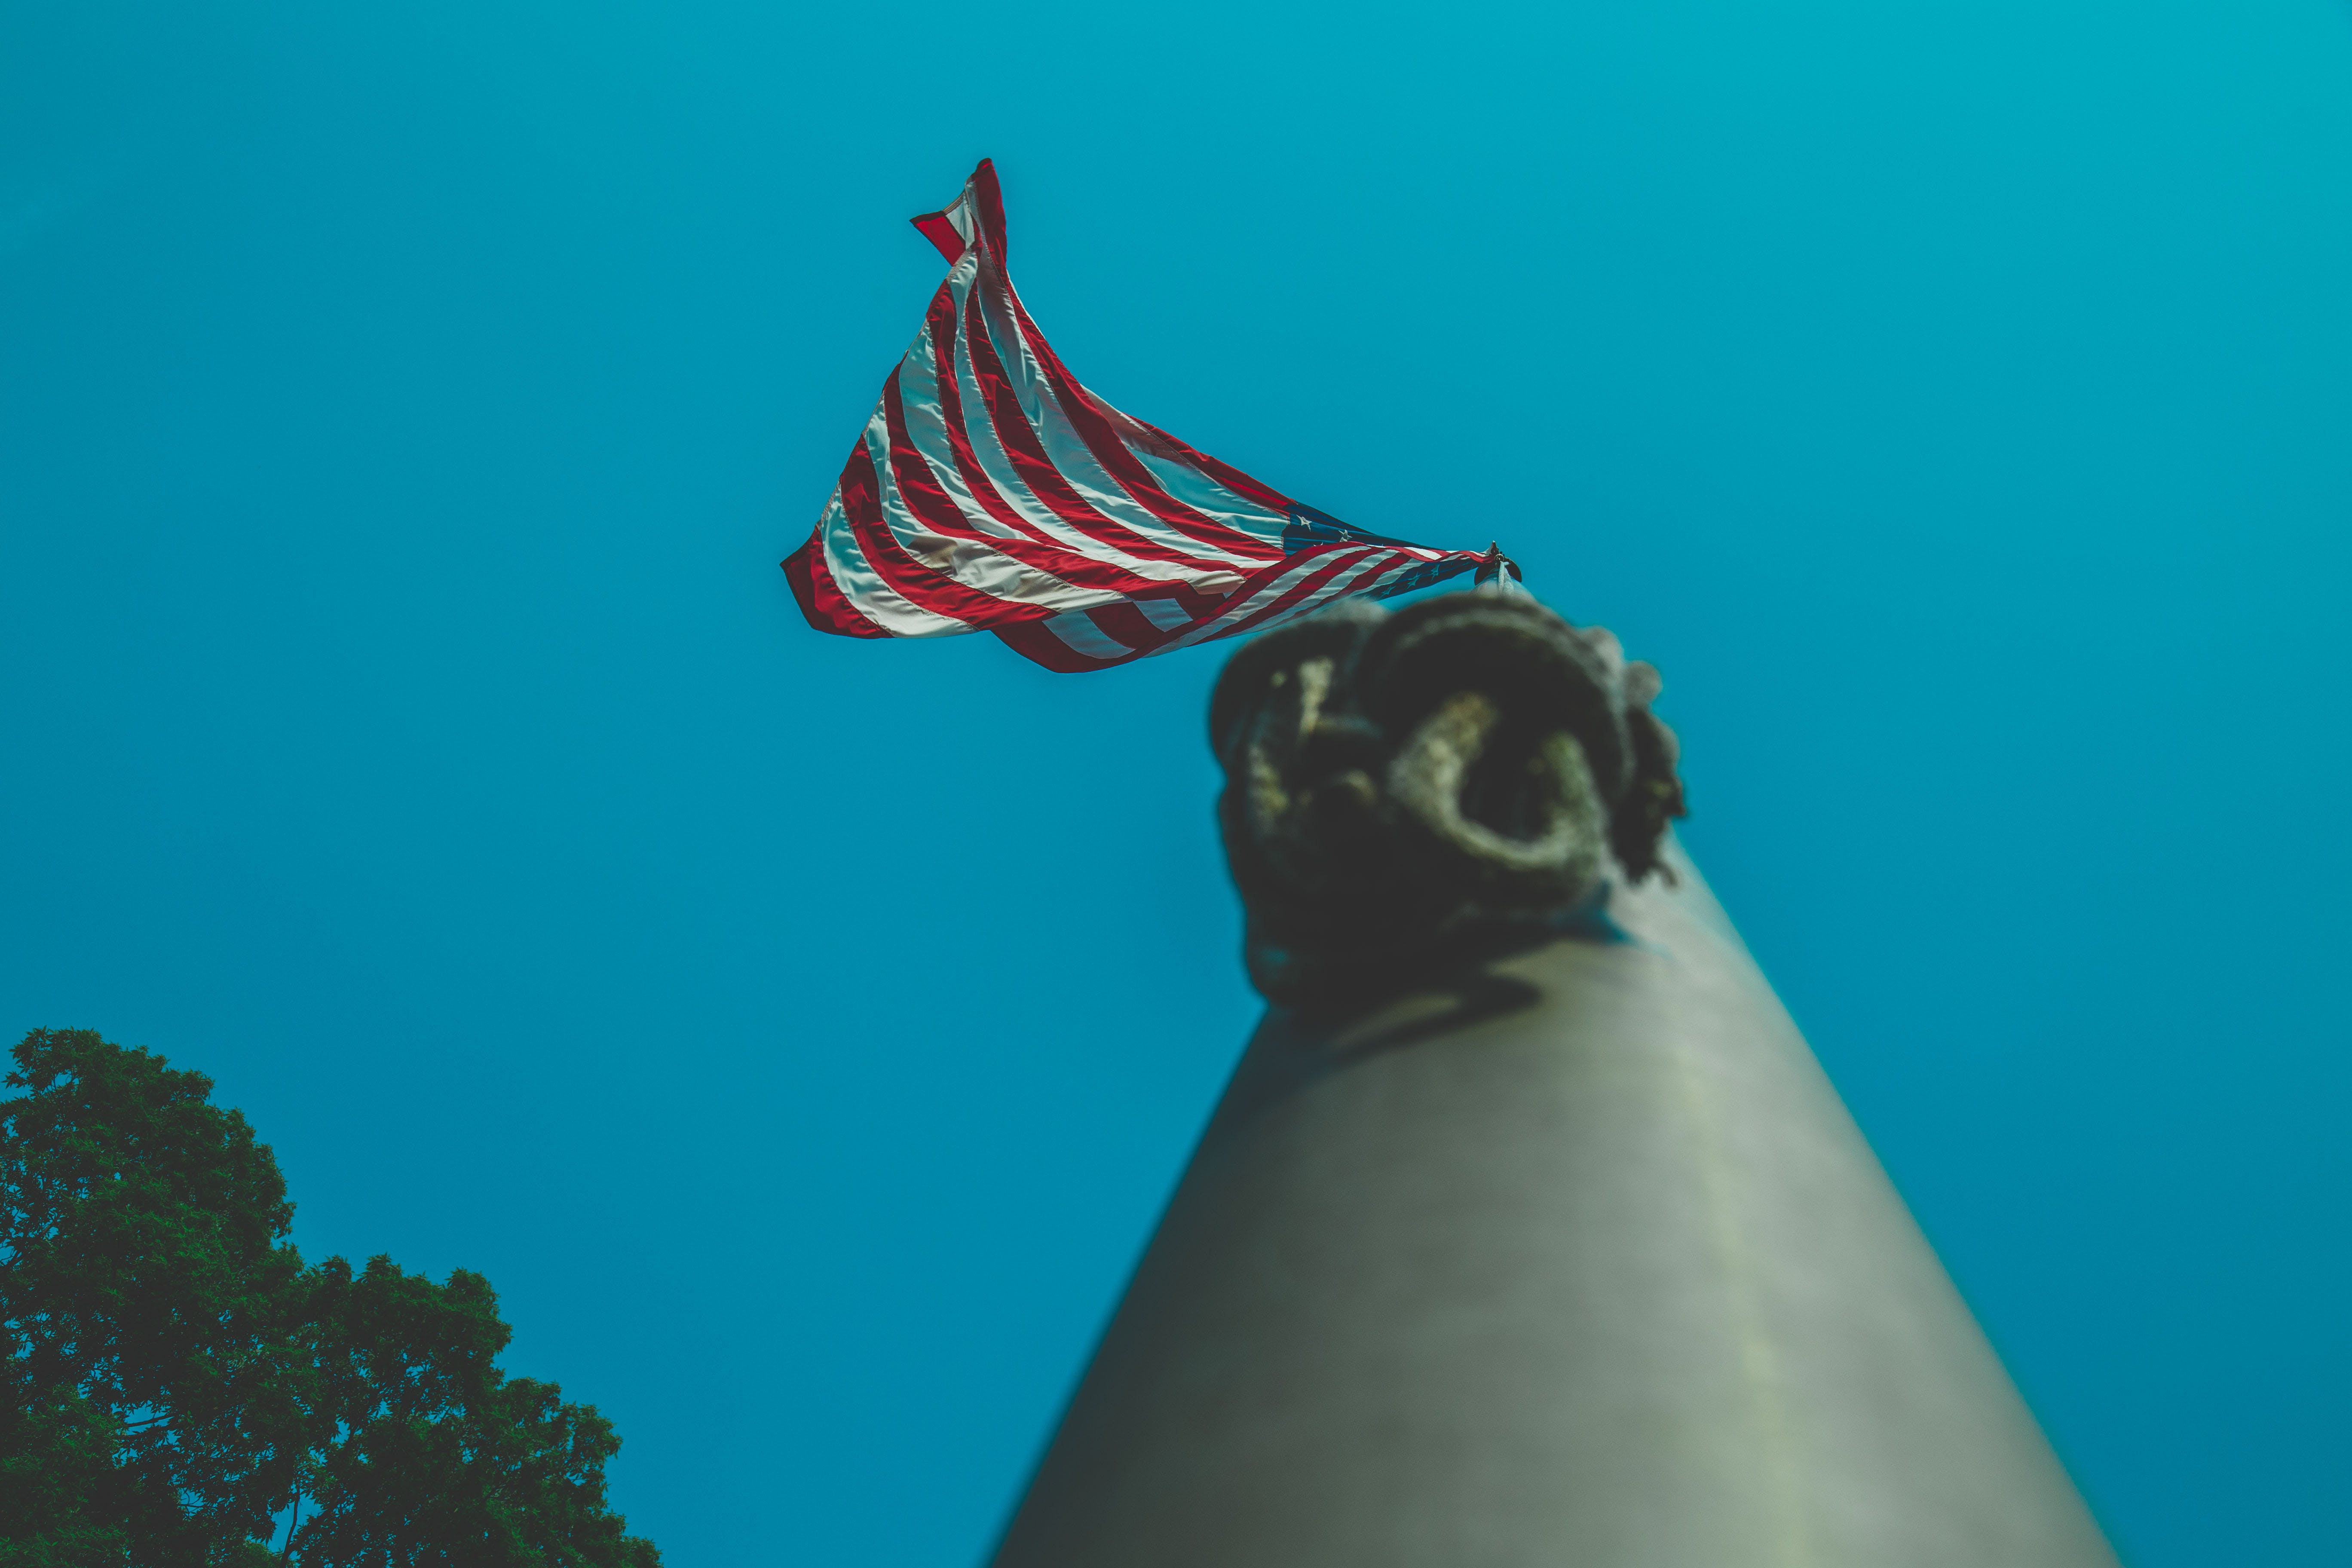 Low-angle Photography of Us Flagpole